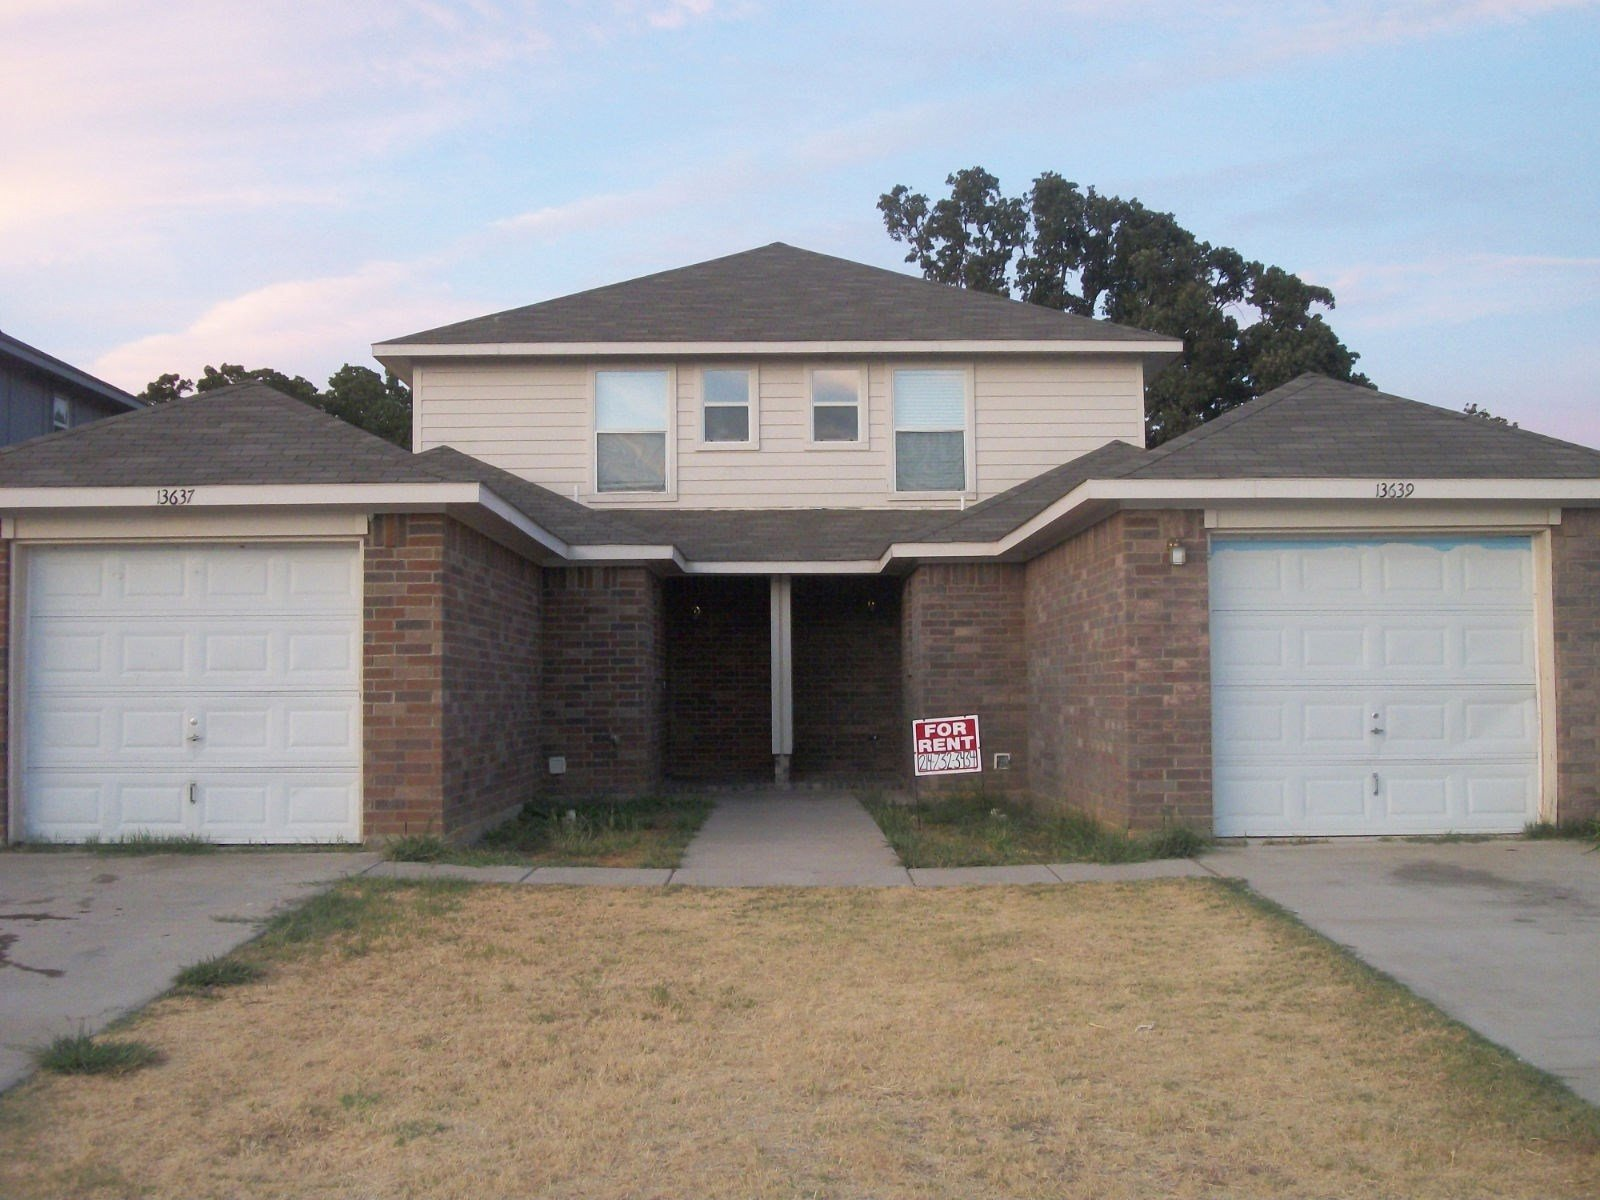 Best Section 8 Housing And Apartments For Rent In Dallas Collin With Pictures